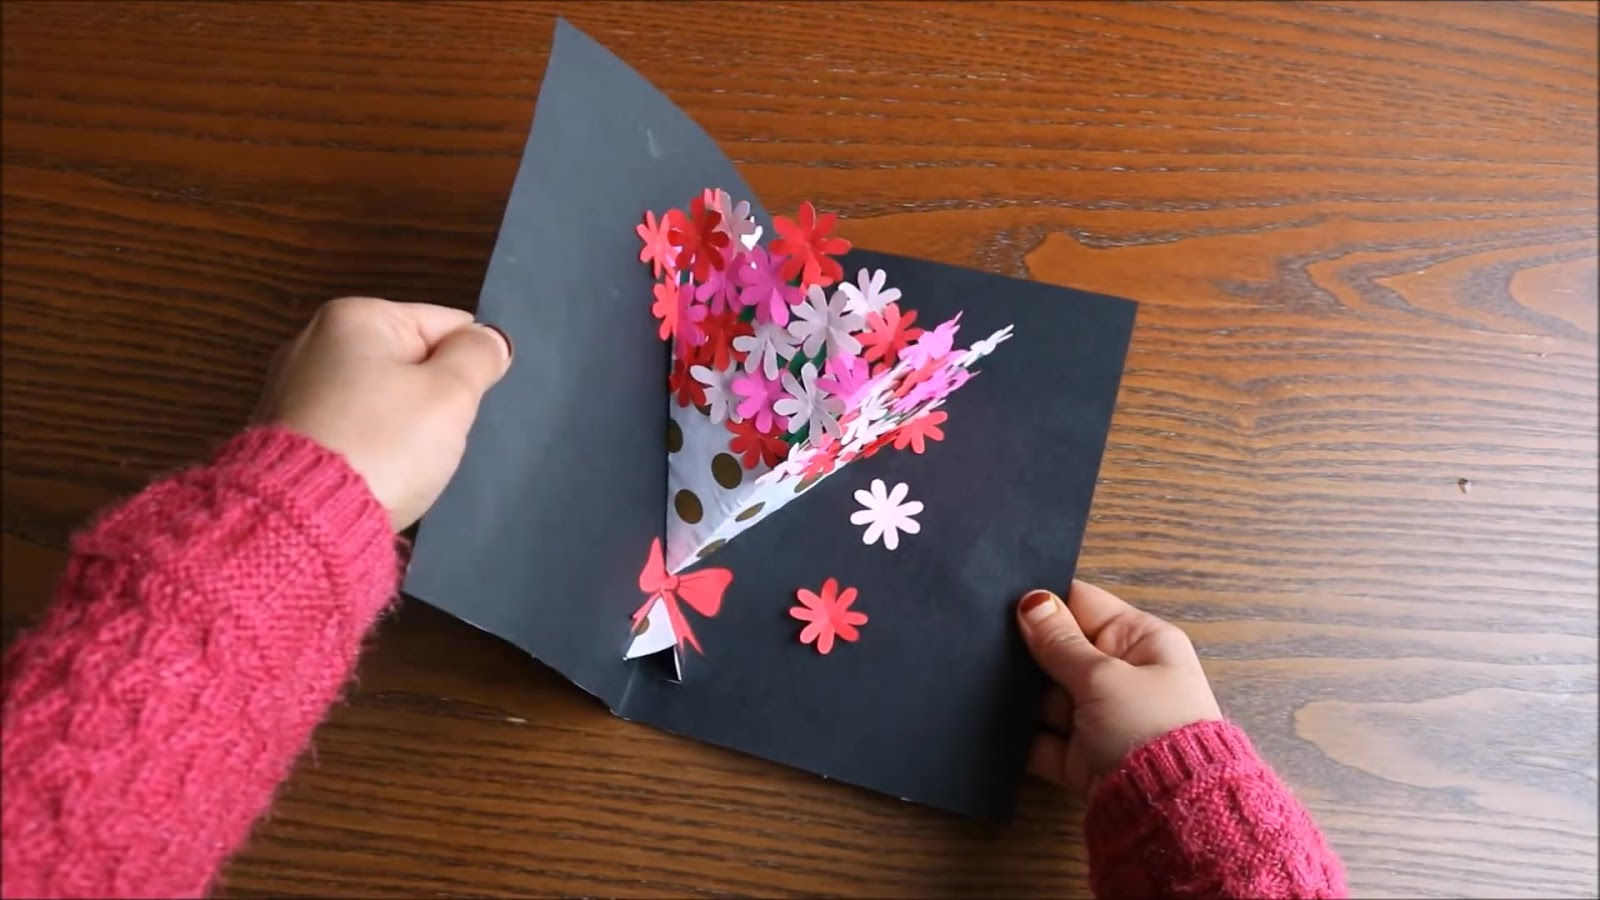 Flower bouquet pop up card crazzy craft how to make a 3d card using simple utilities like paperscissorsglue and colorseasy to make and can be presented in the form of greeting cards mightylinksfo